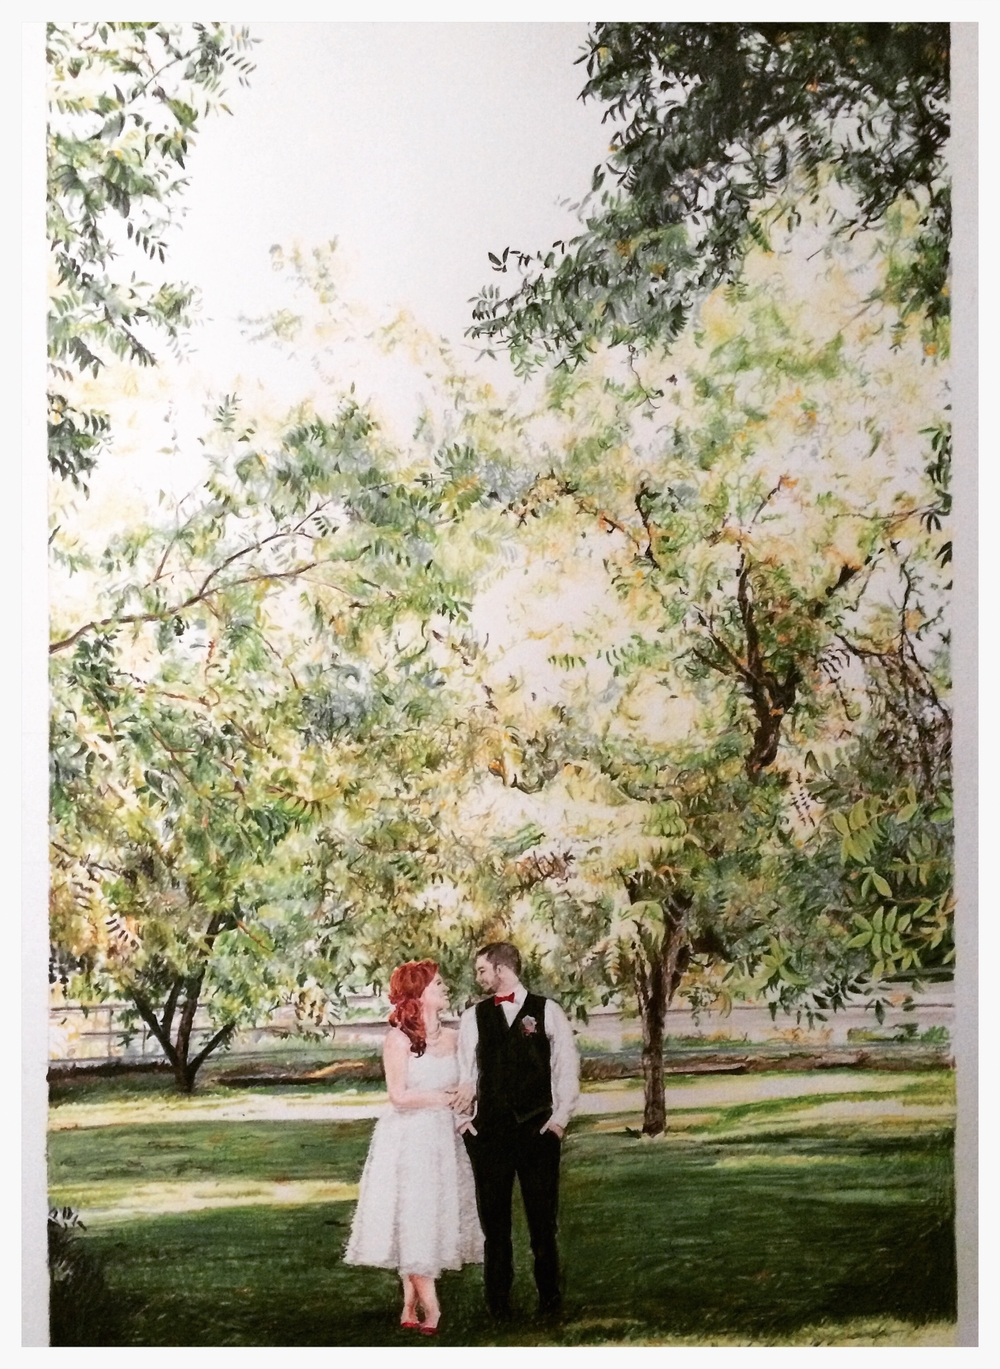 Our Wedding Day | Colored Pencil on Bristol Paper